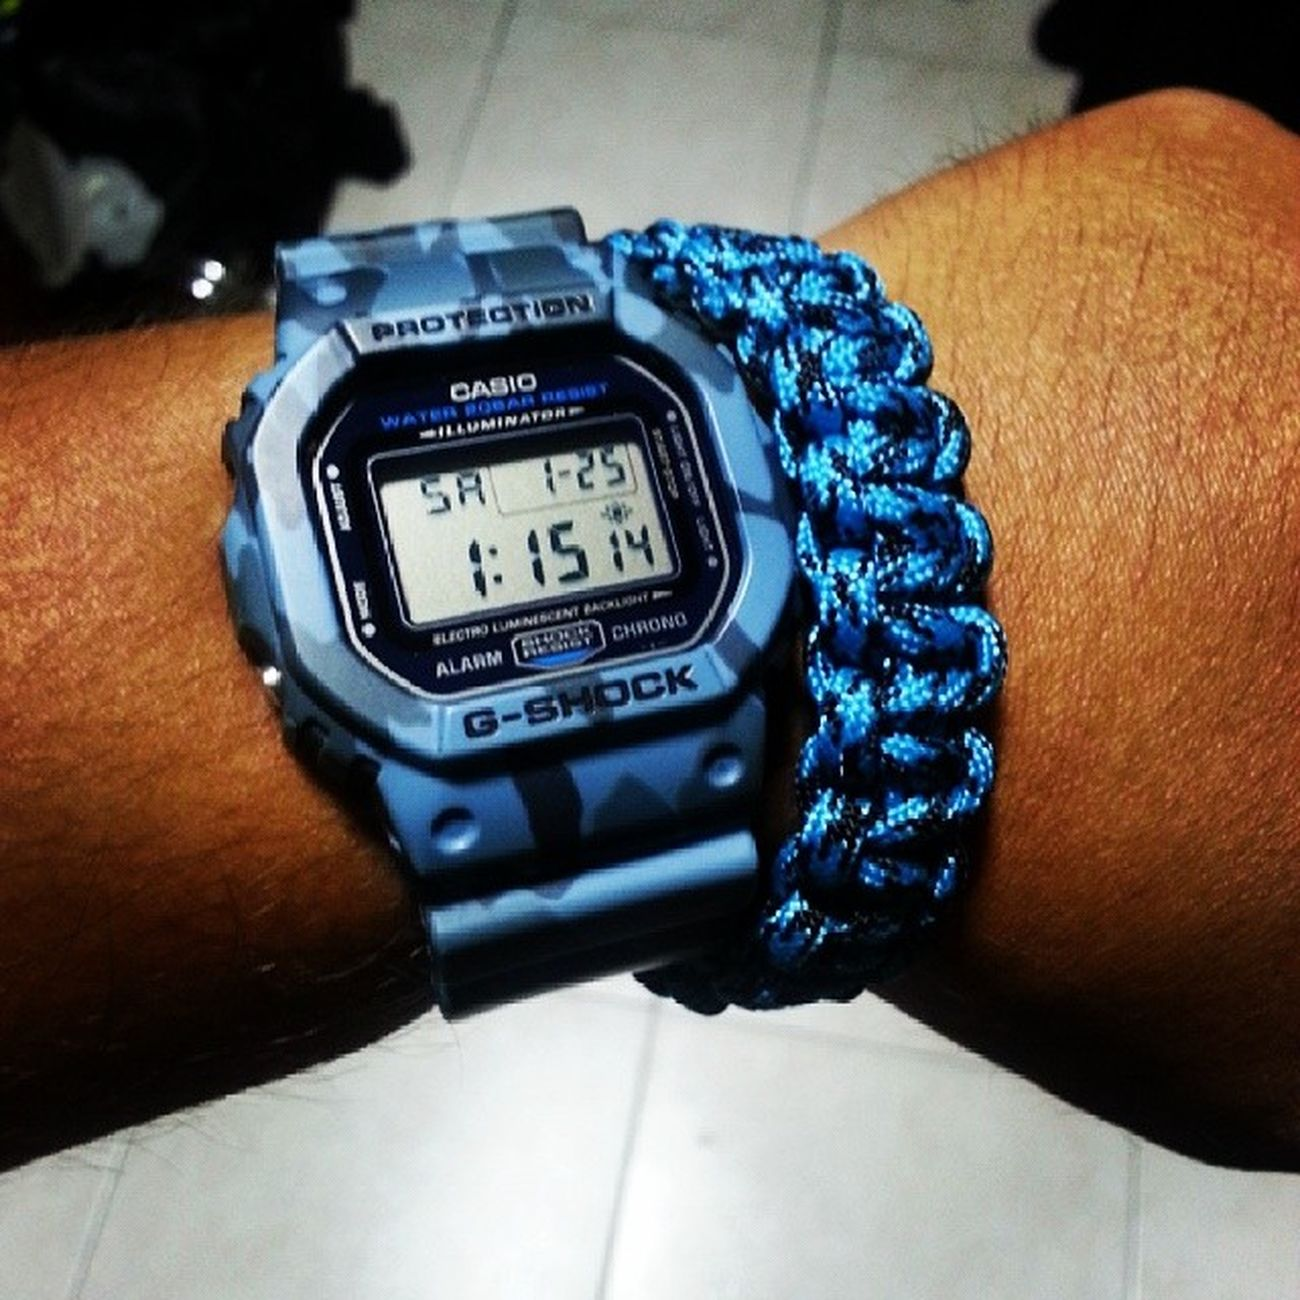 Matched!! Gshock Dw5600 with Paracord Bracelet !!! Loving it!